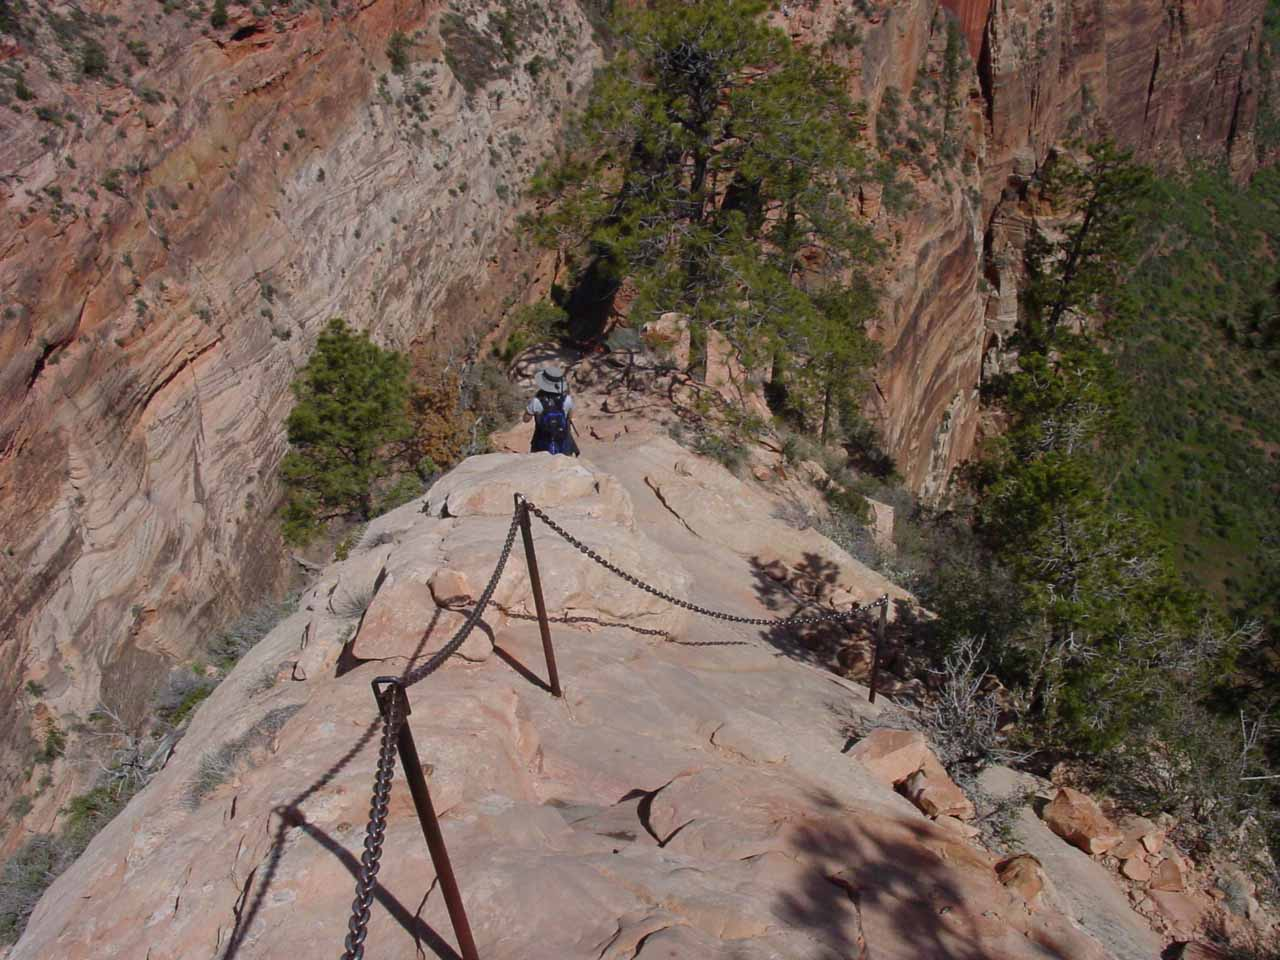 Descending from the summit of Angels Landing